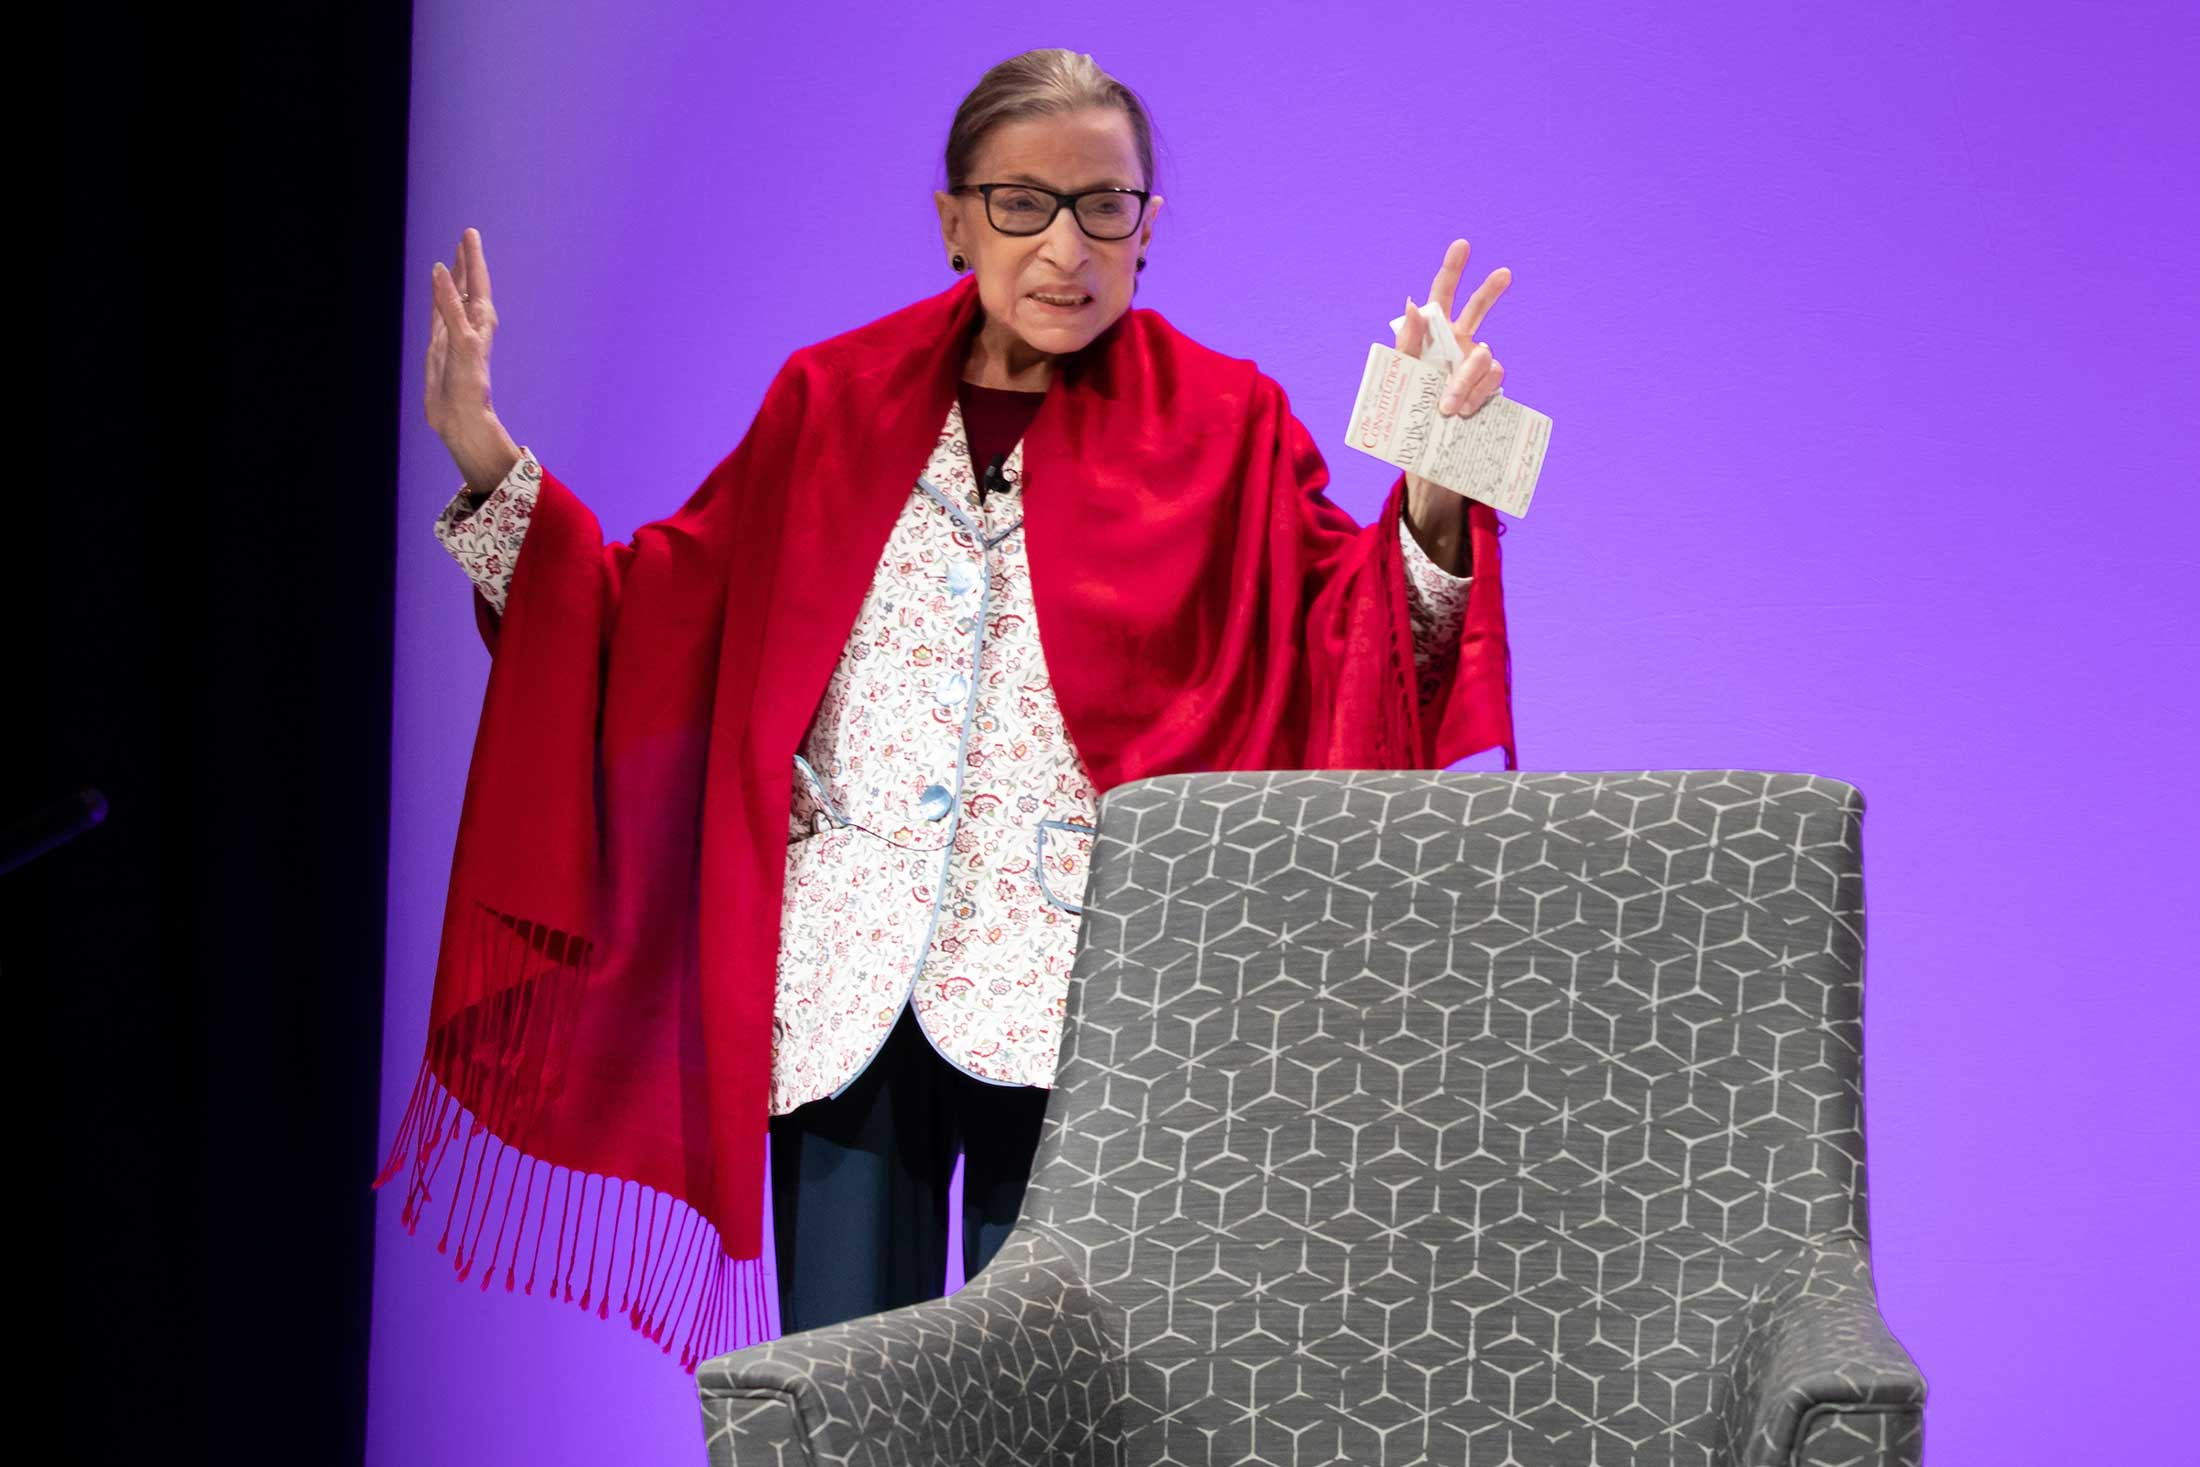 Justice Ruth Bader Ginsburg waving to the audience